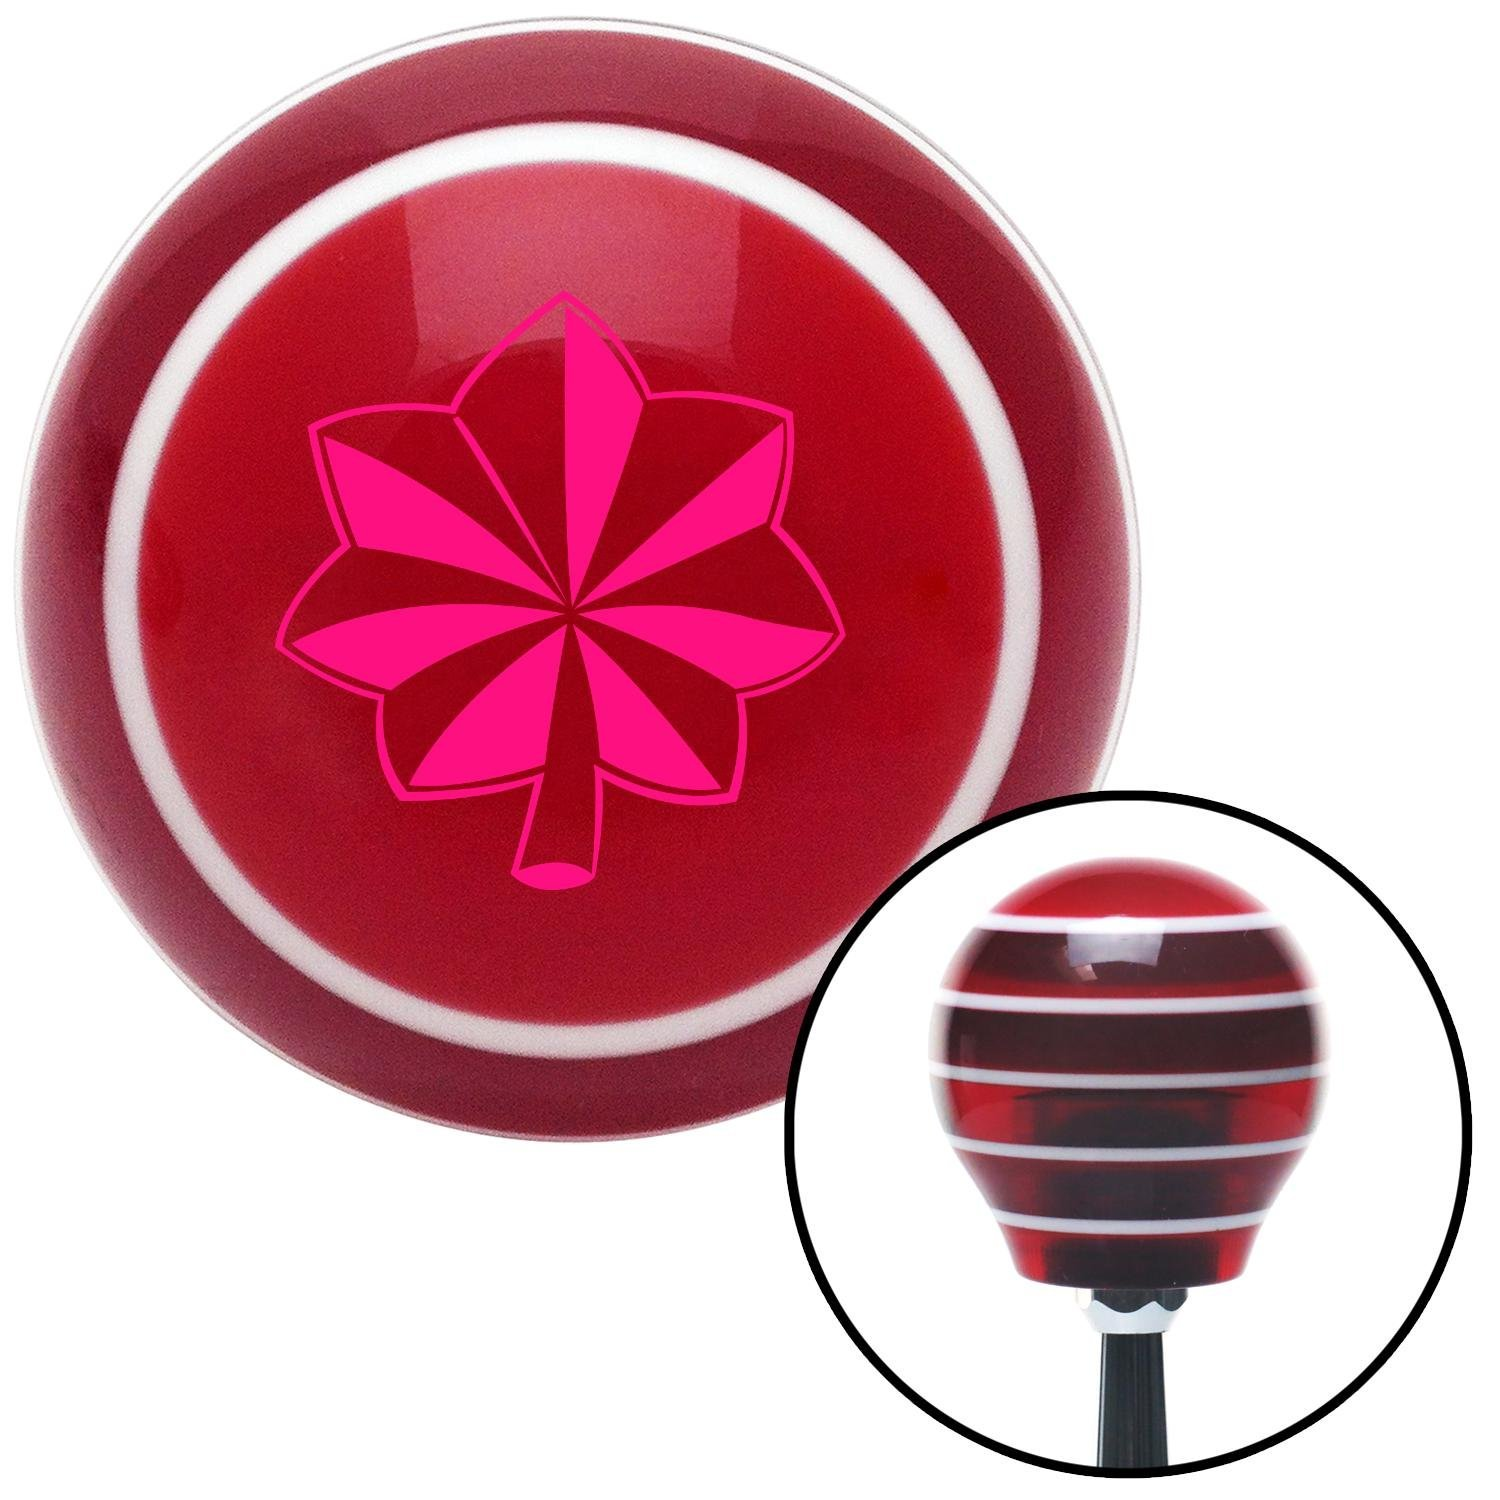 American Shifter 115493 Red Stripe Shift Knob with M16 x 1.5 Insert Pink Commander